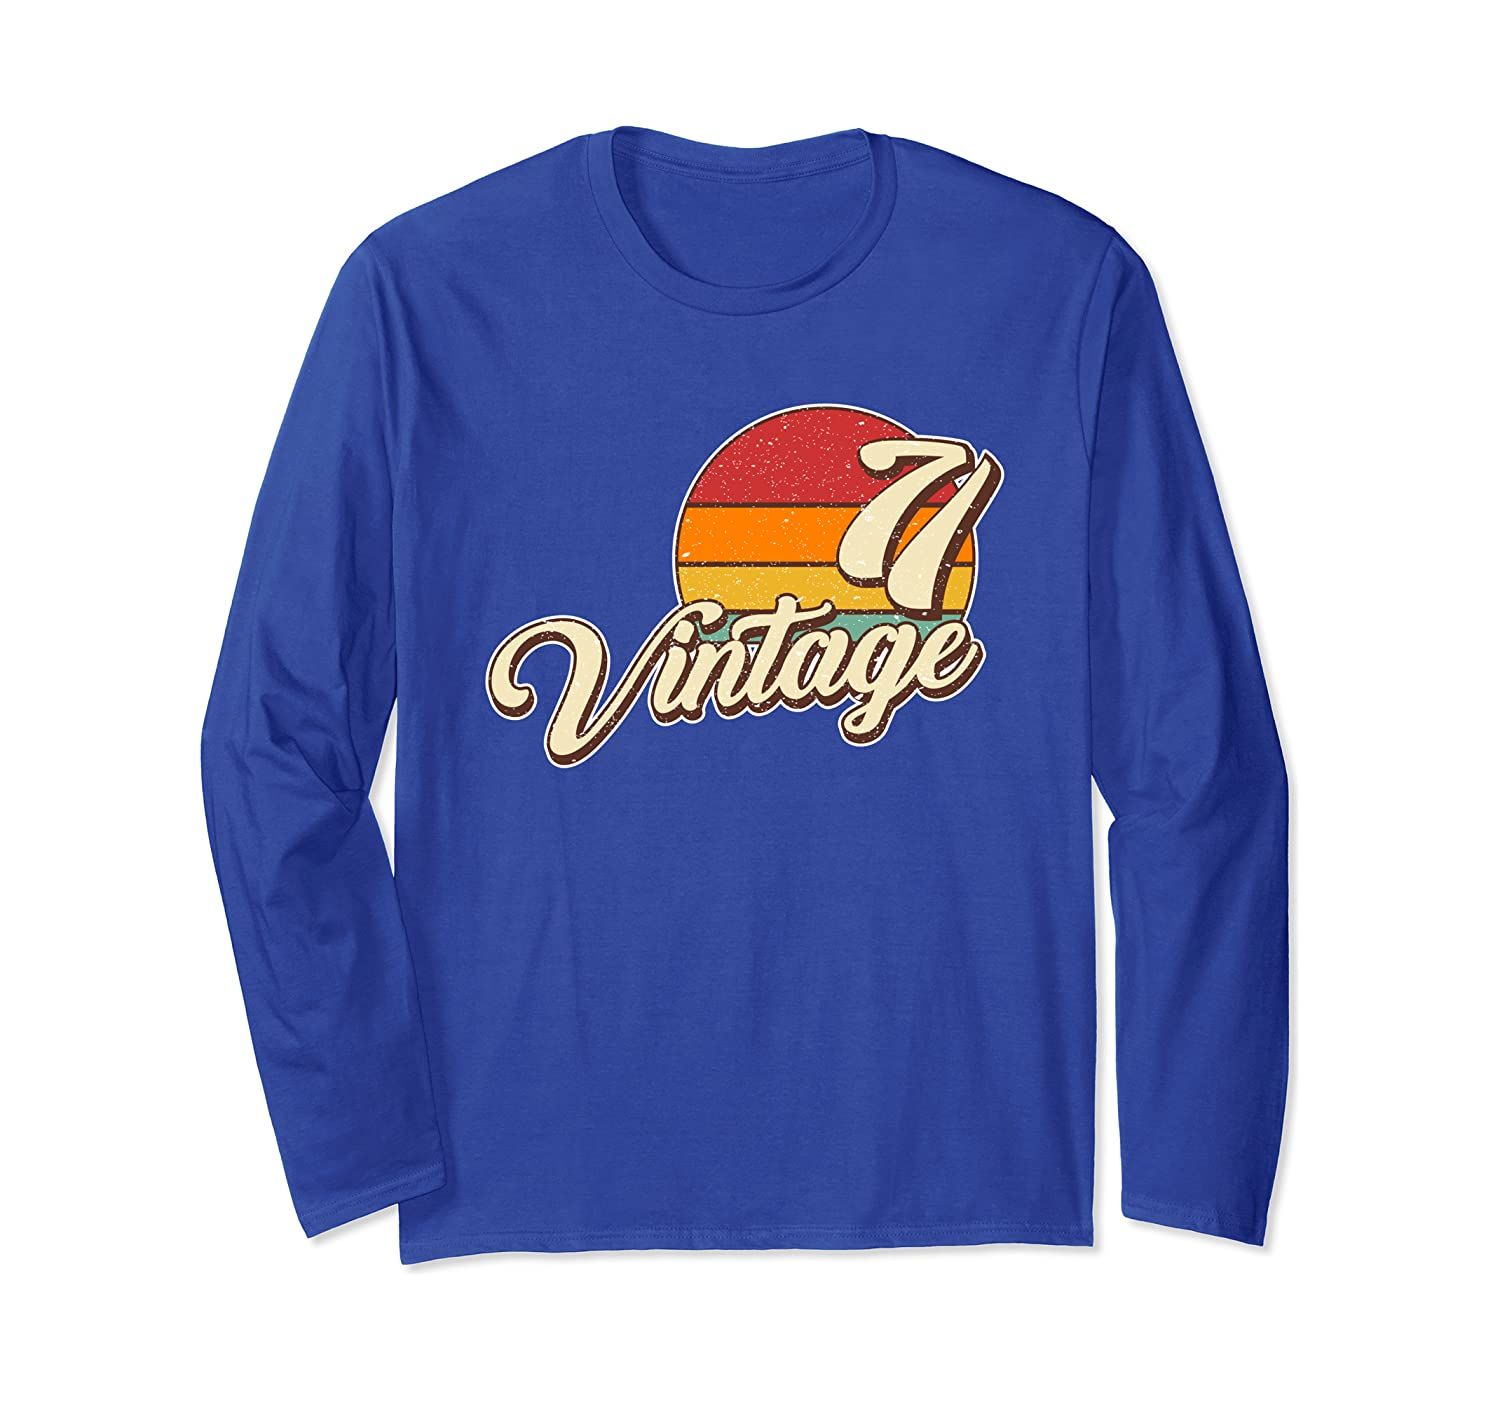 1971 Retro Sunset Vintage 71 Long Sleeve T-Shirt